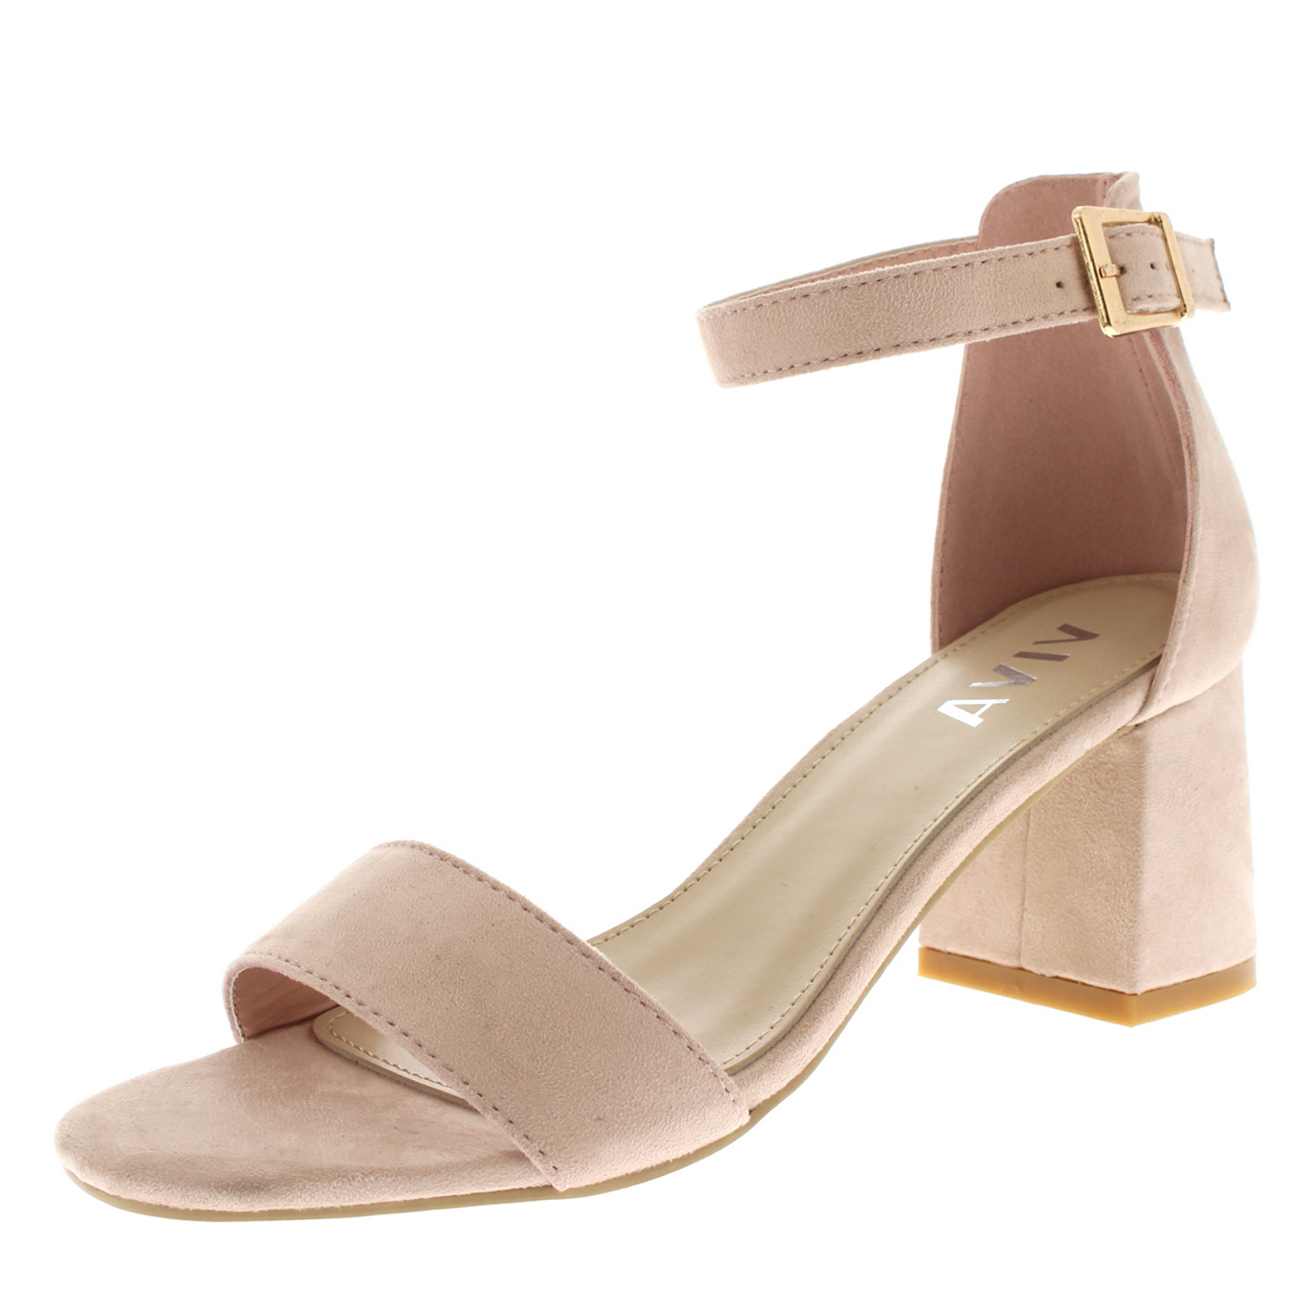 00345e47a Ladies Sandal Cut Out Block Heel Open Toe Barely There Ankle Strap ...